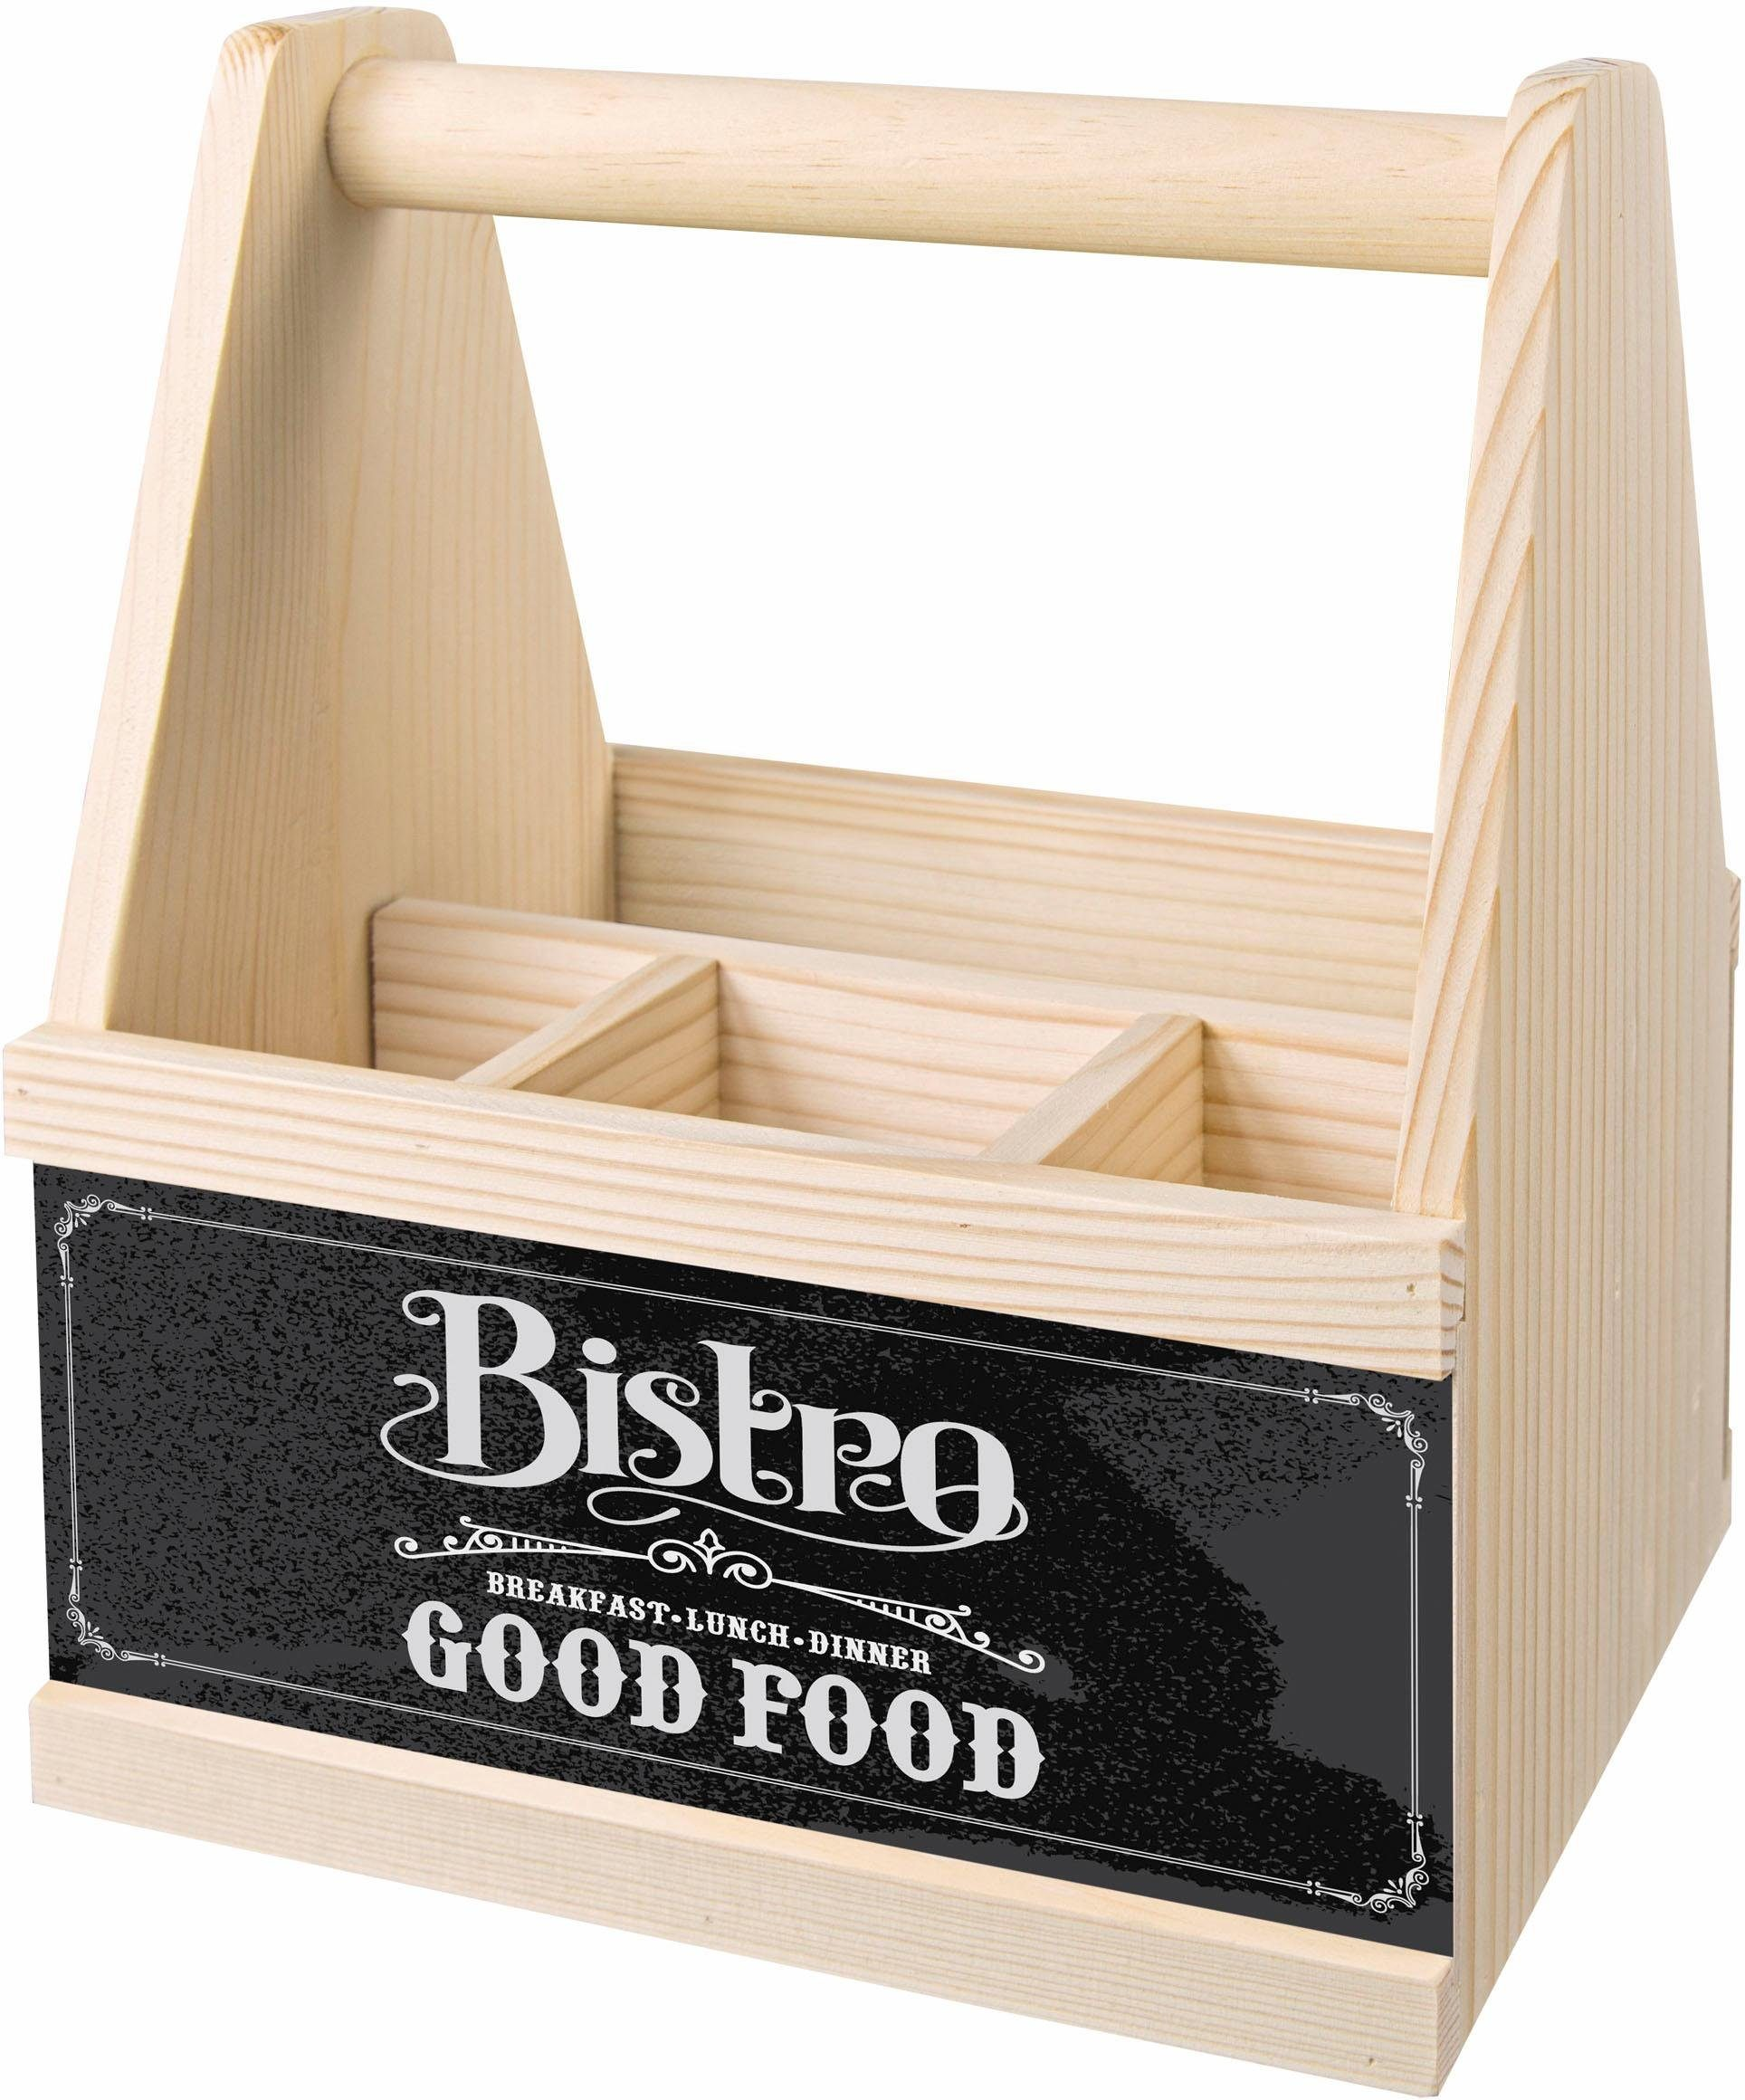 Contento Besteck Caddy »Bistro Good Food«